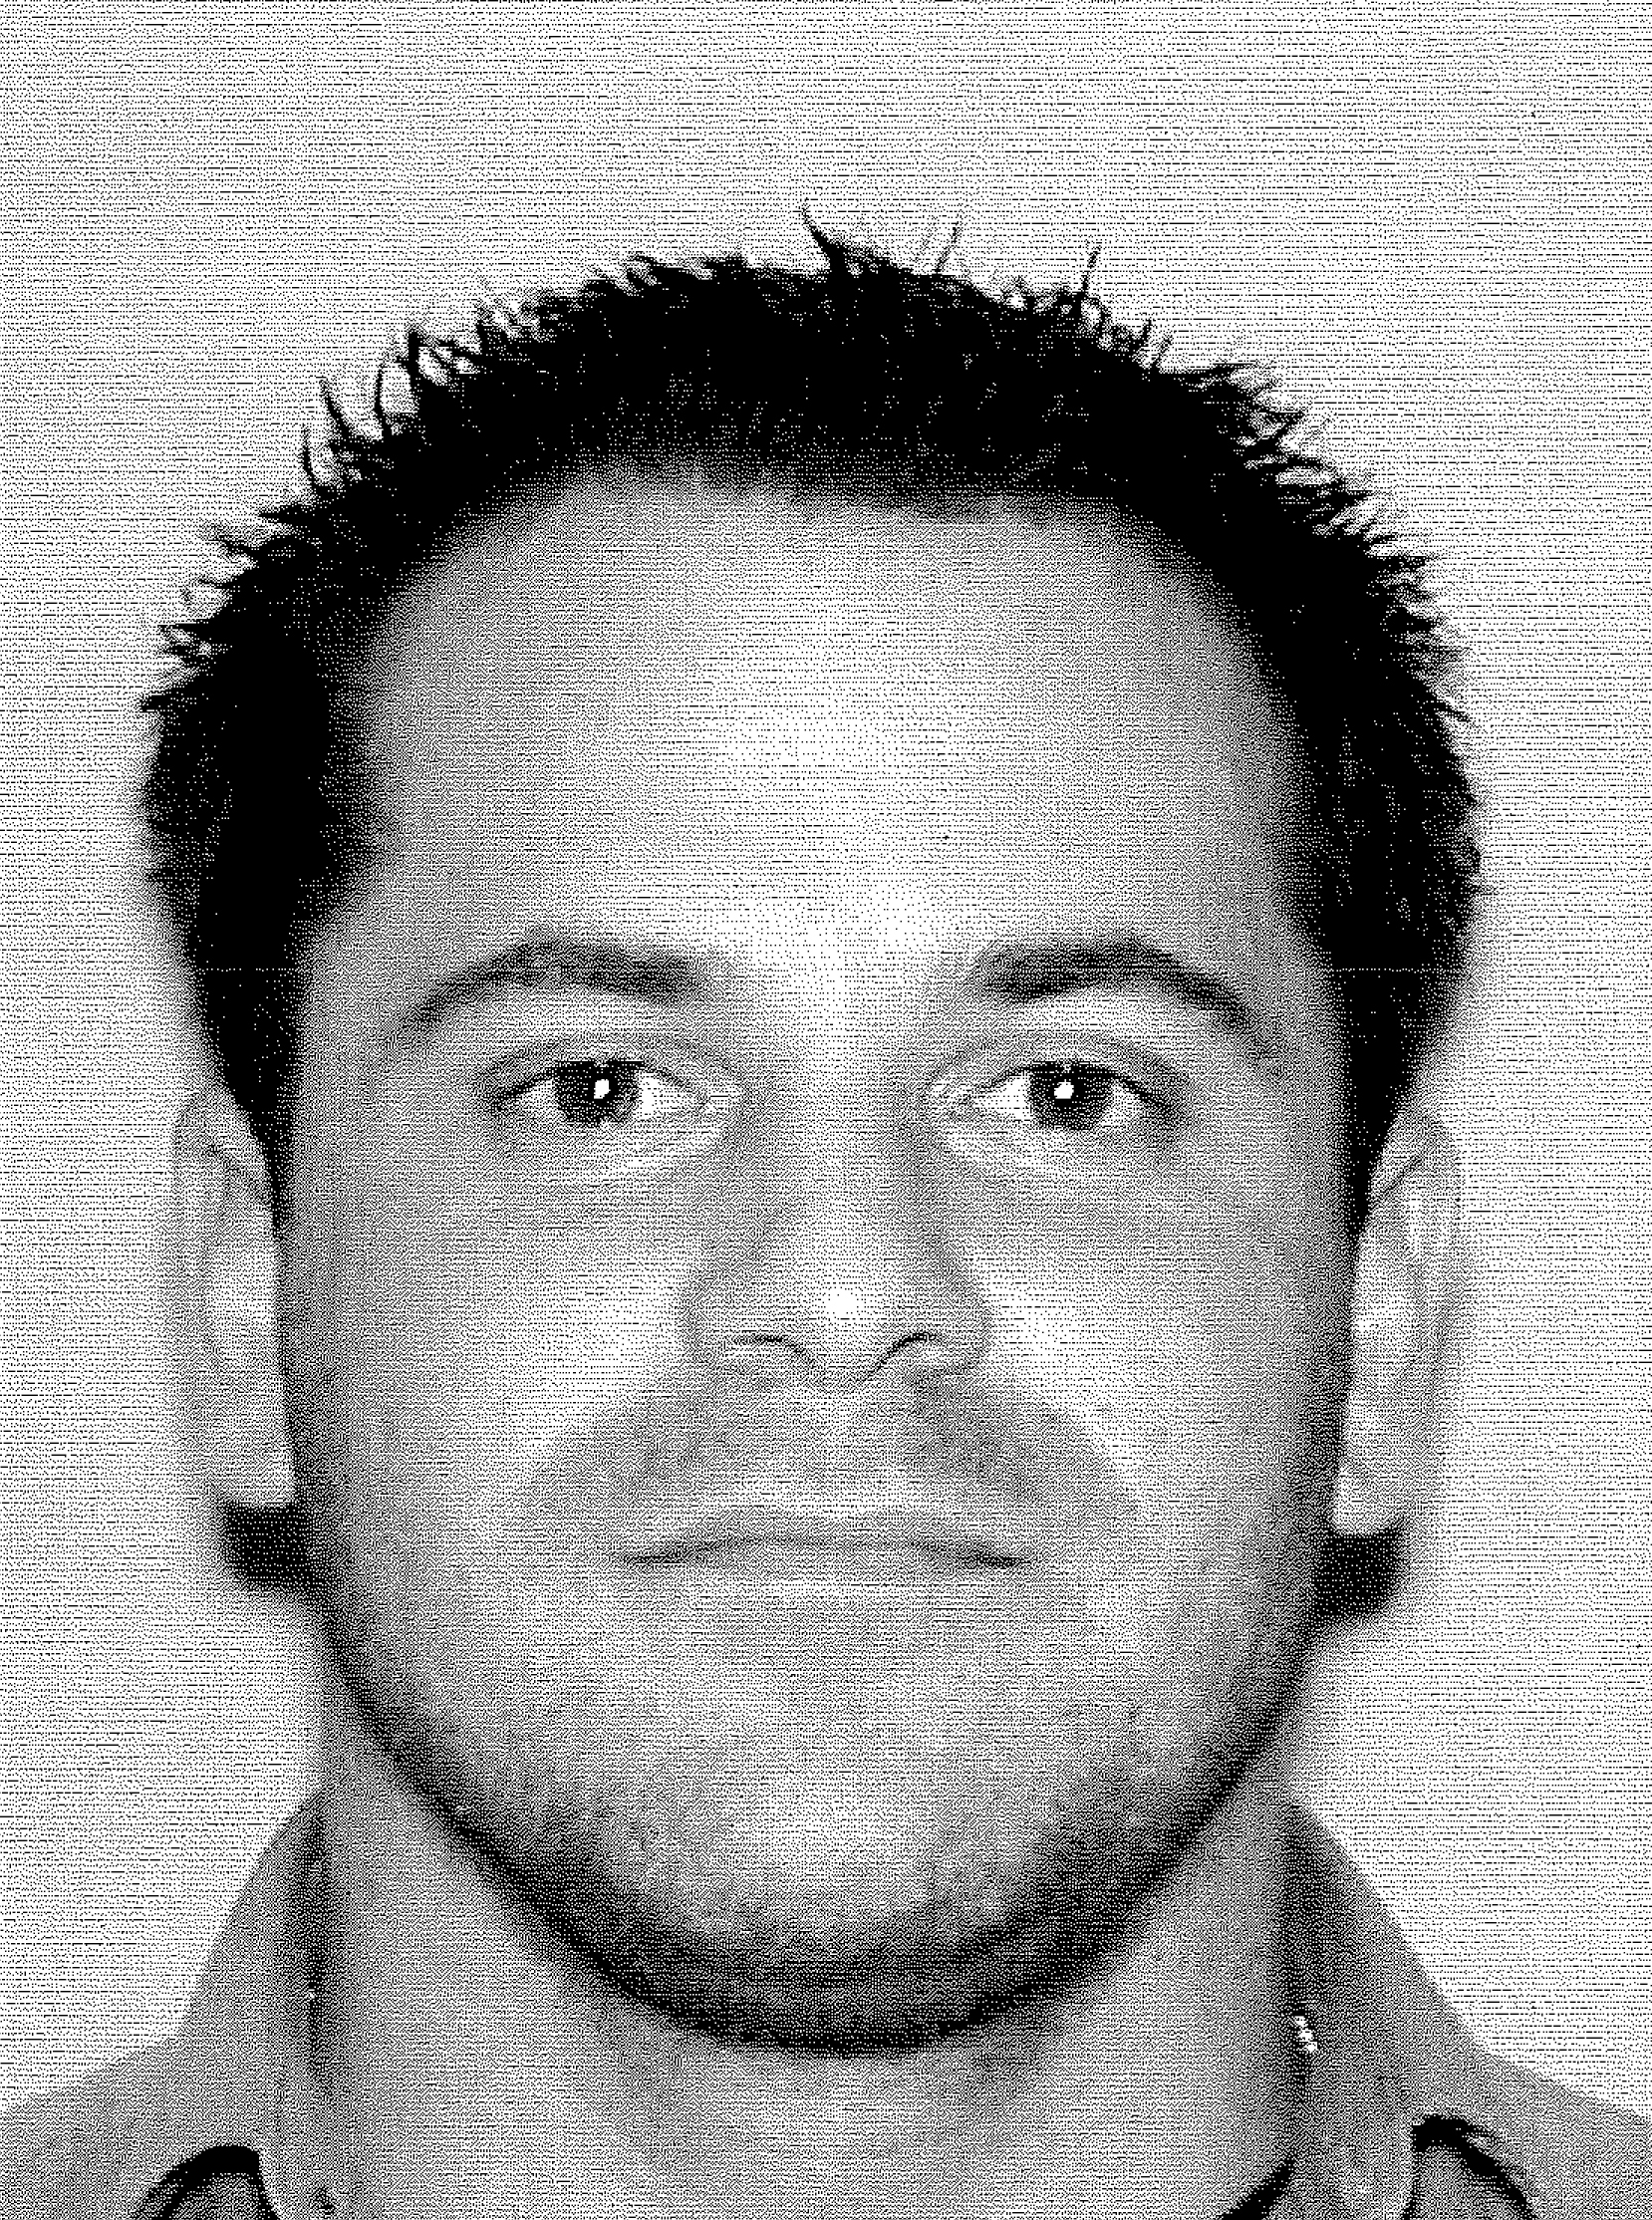 Thomas Carlevale (Photo: Ocean County Prosecutor's Office)